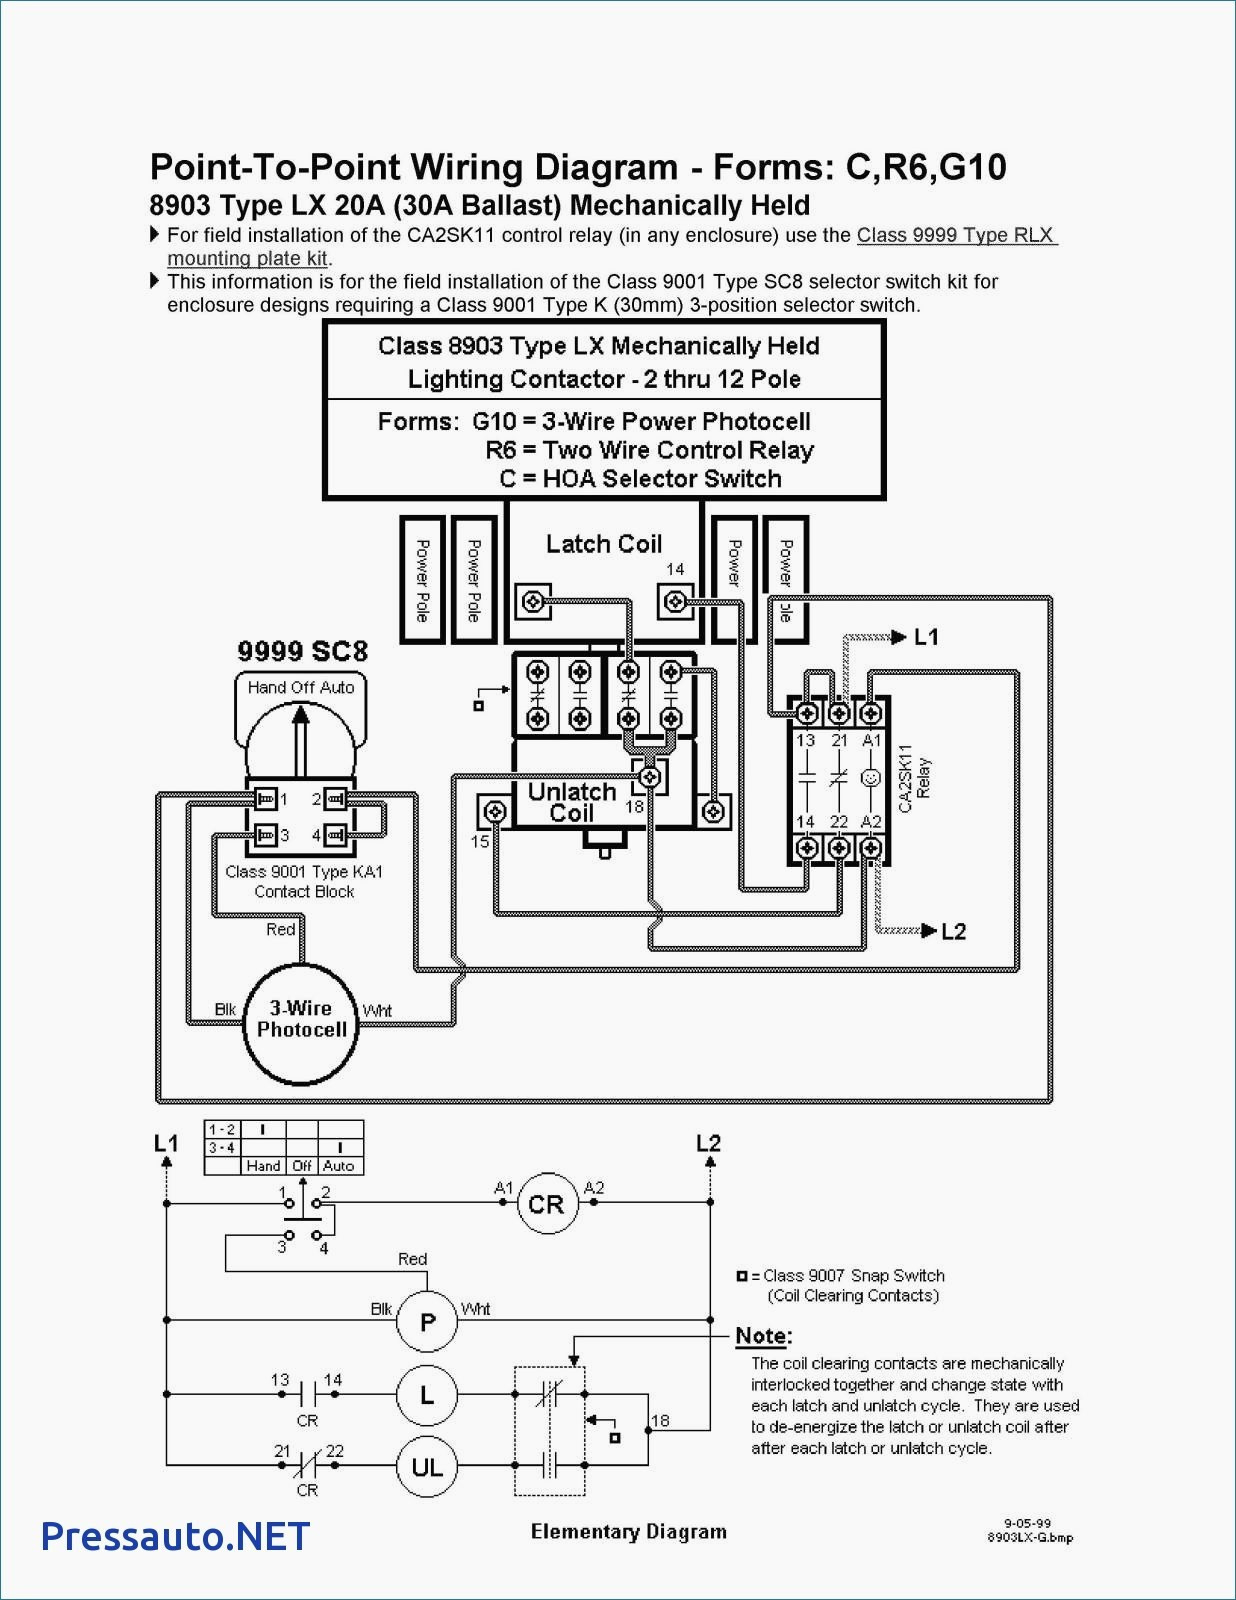 Square D 8903 Lighting Contactor Wiring Diagram - Square D 893 Lighting Contactor Wiring Diagram Unique Class How to Wire In Square D 8903 10l